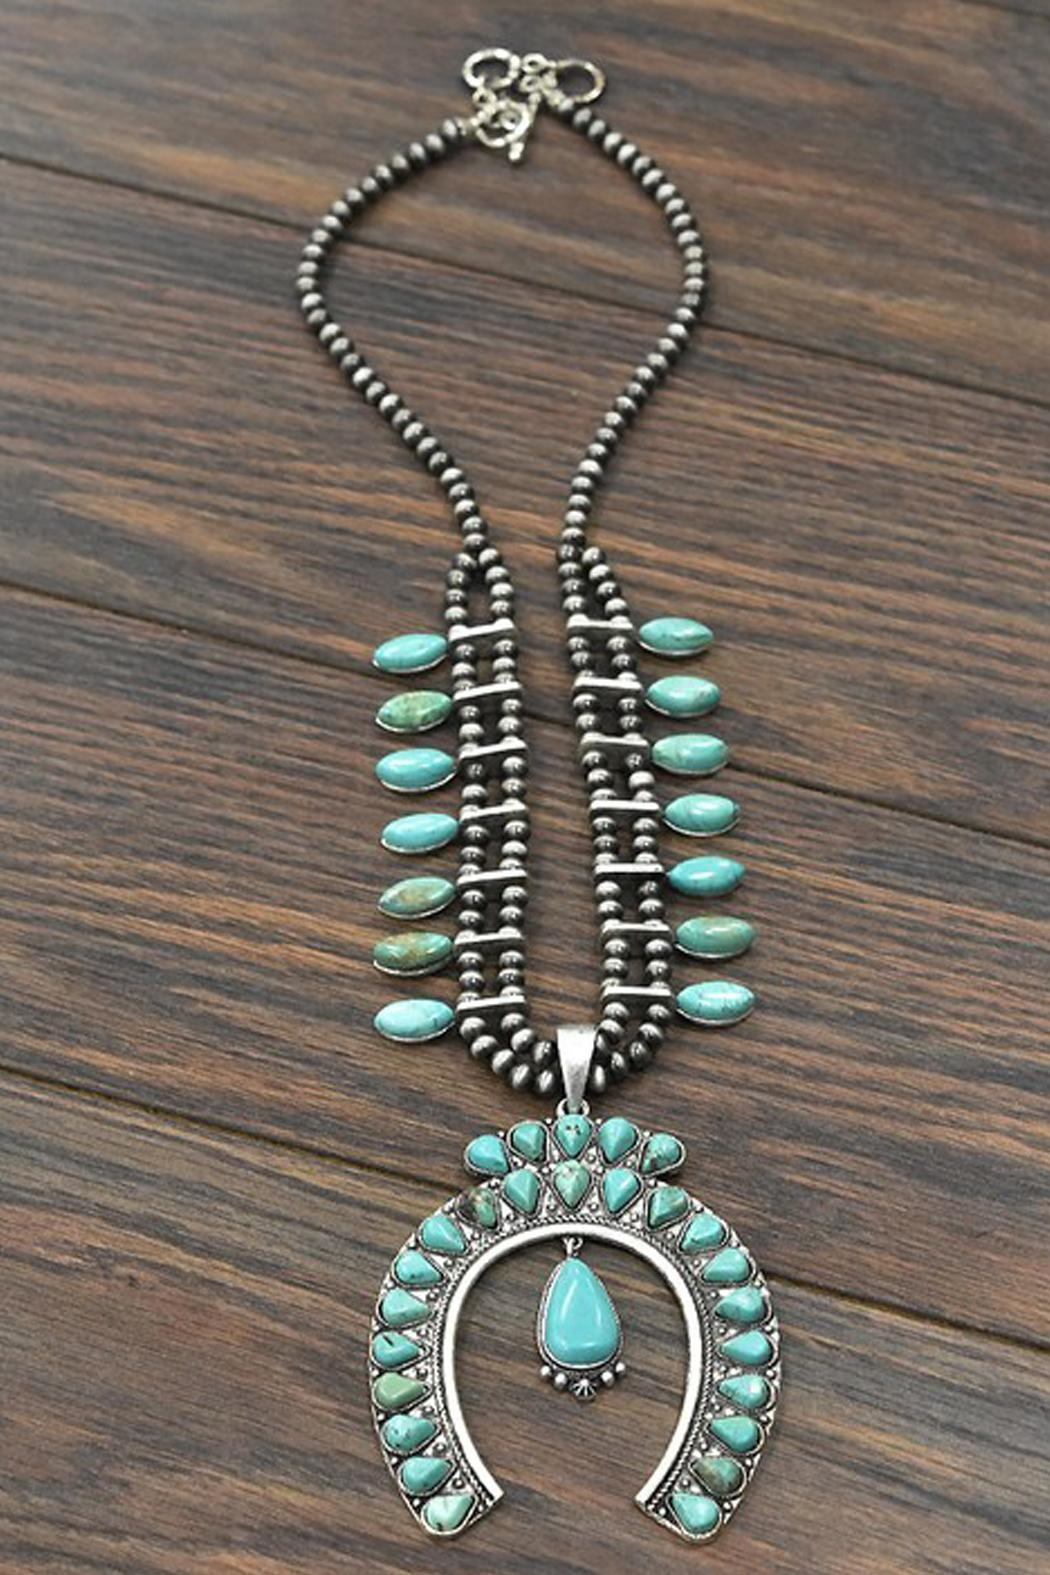 JChronicles Full-Squash-Blossom Natural-Turquoise Necklace - Main Image